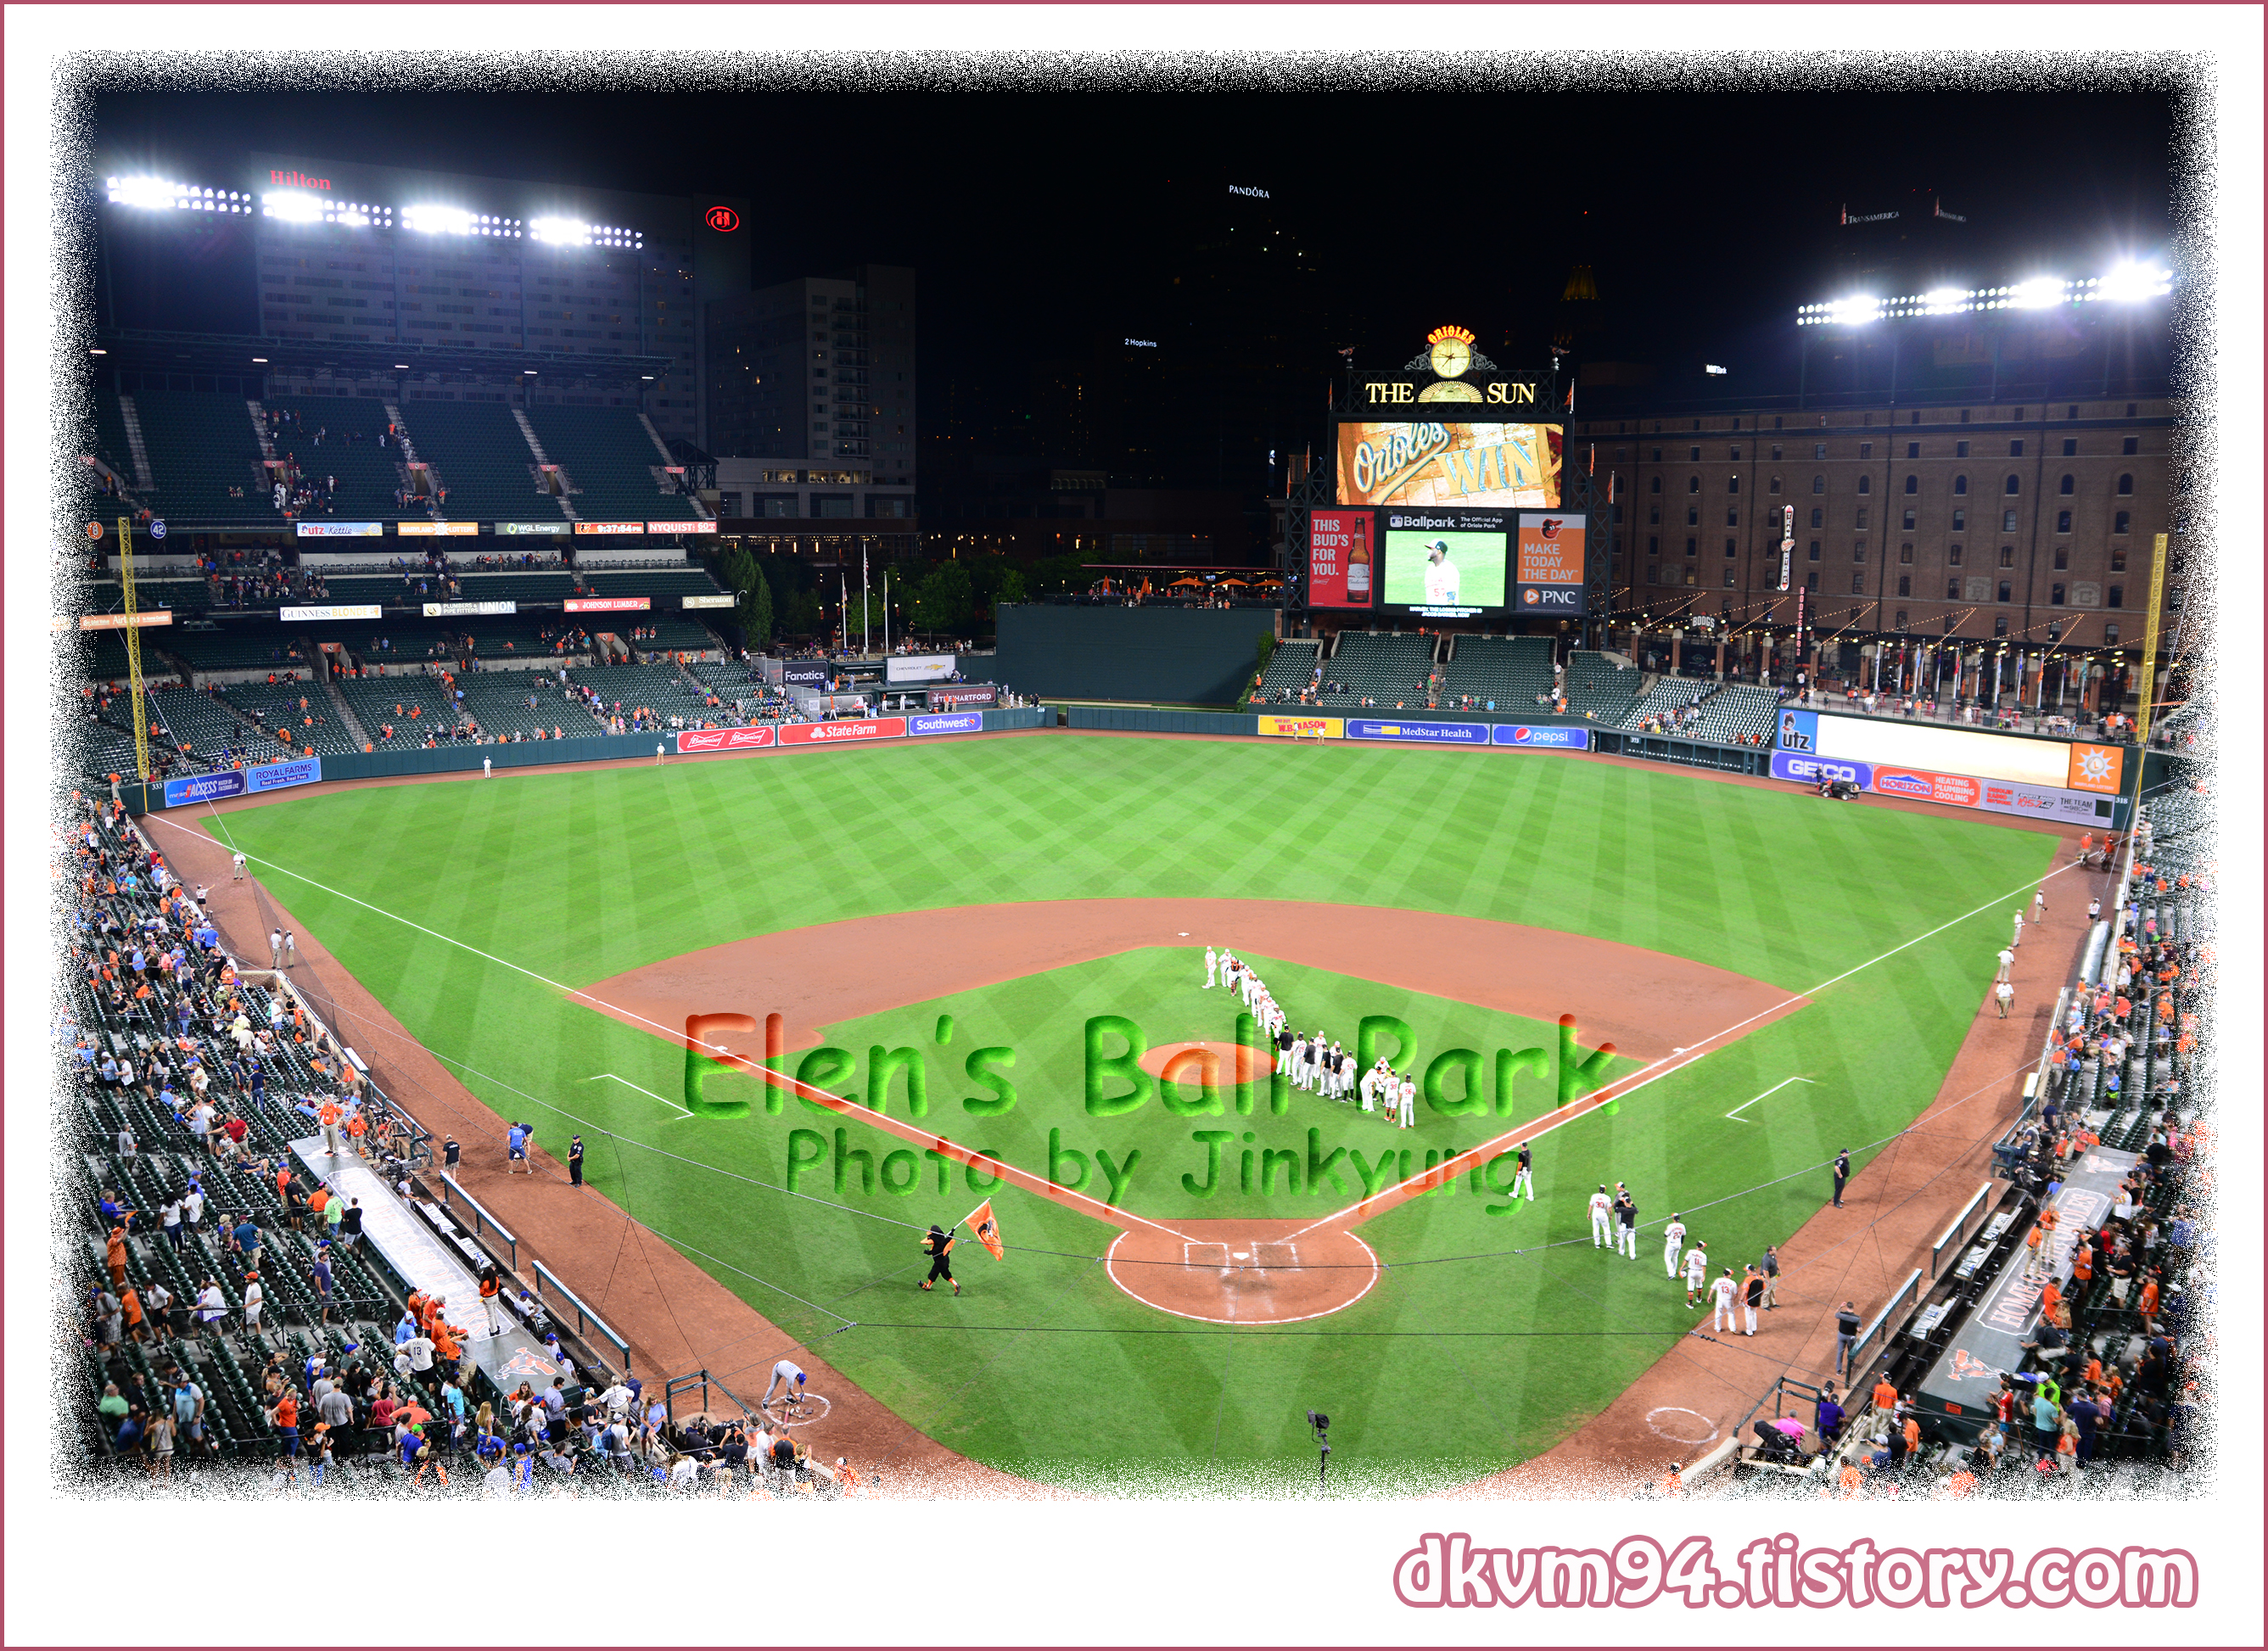 [MLB TOUR(25)] 오리올 파크 앳 캠든 야즈 : 볼티모어 오리올스의 홈구장 (Oriole Park at Camden Yards : Home of the Baltimore Orioles)